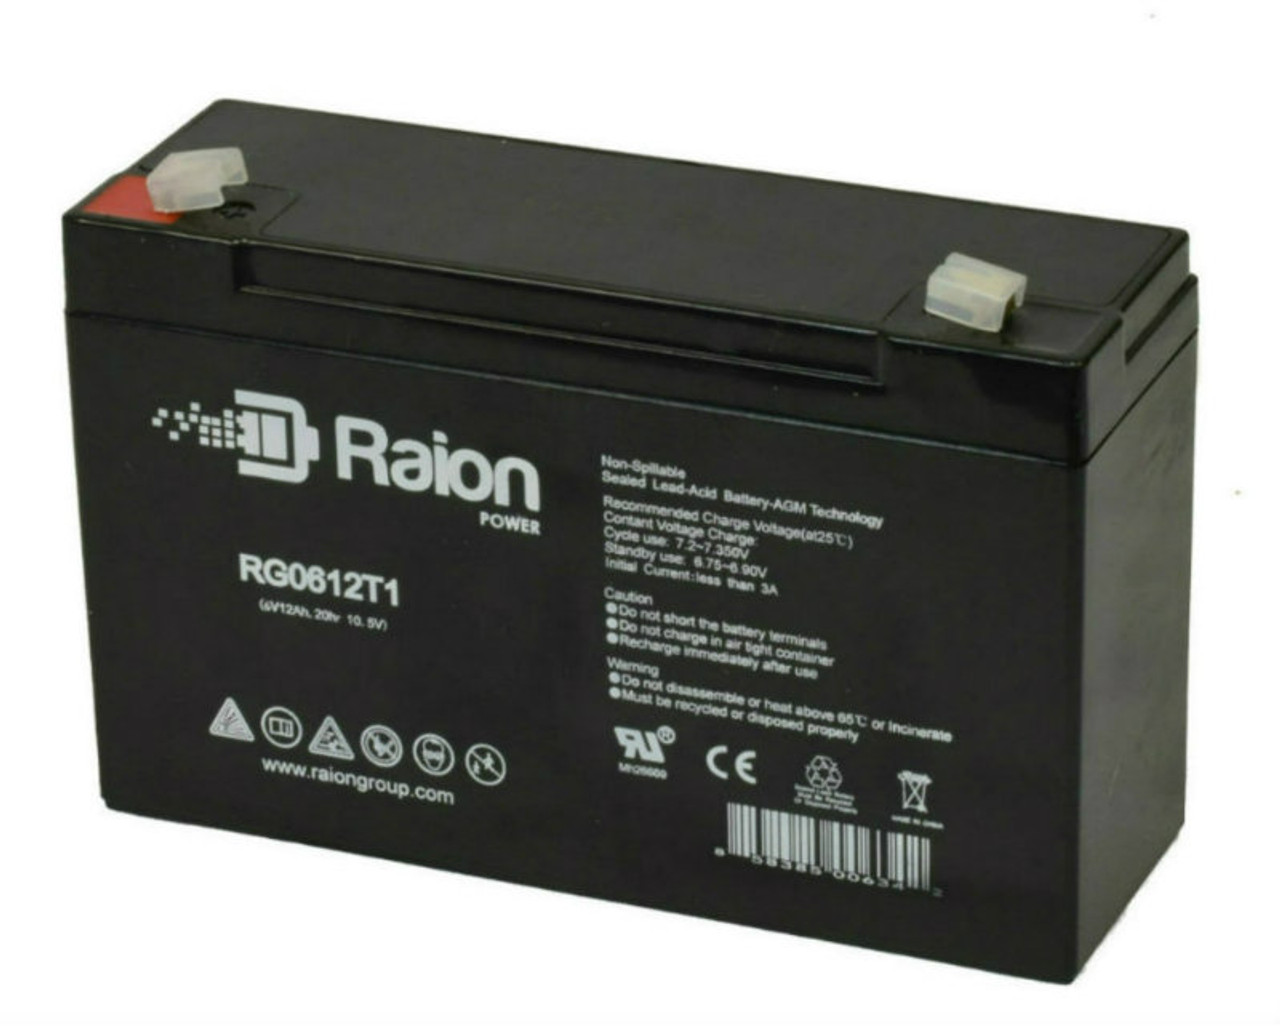 Raion Power RG06120T1 Replacement Battery Pack for Edwards 1602 emergency light